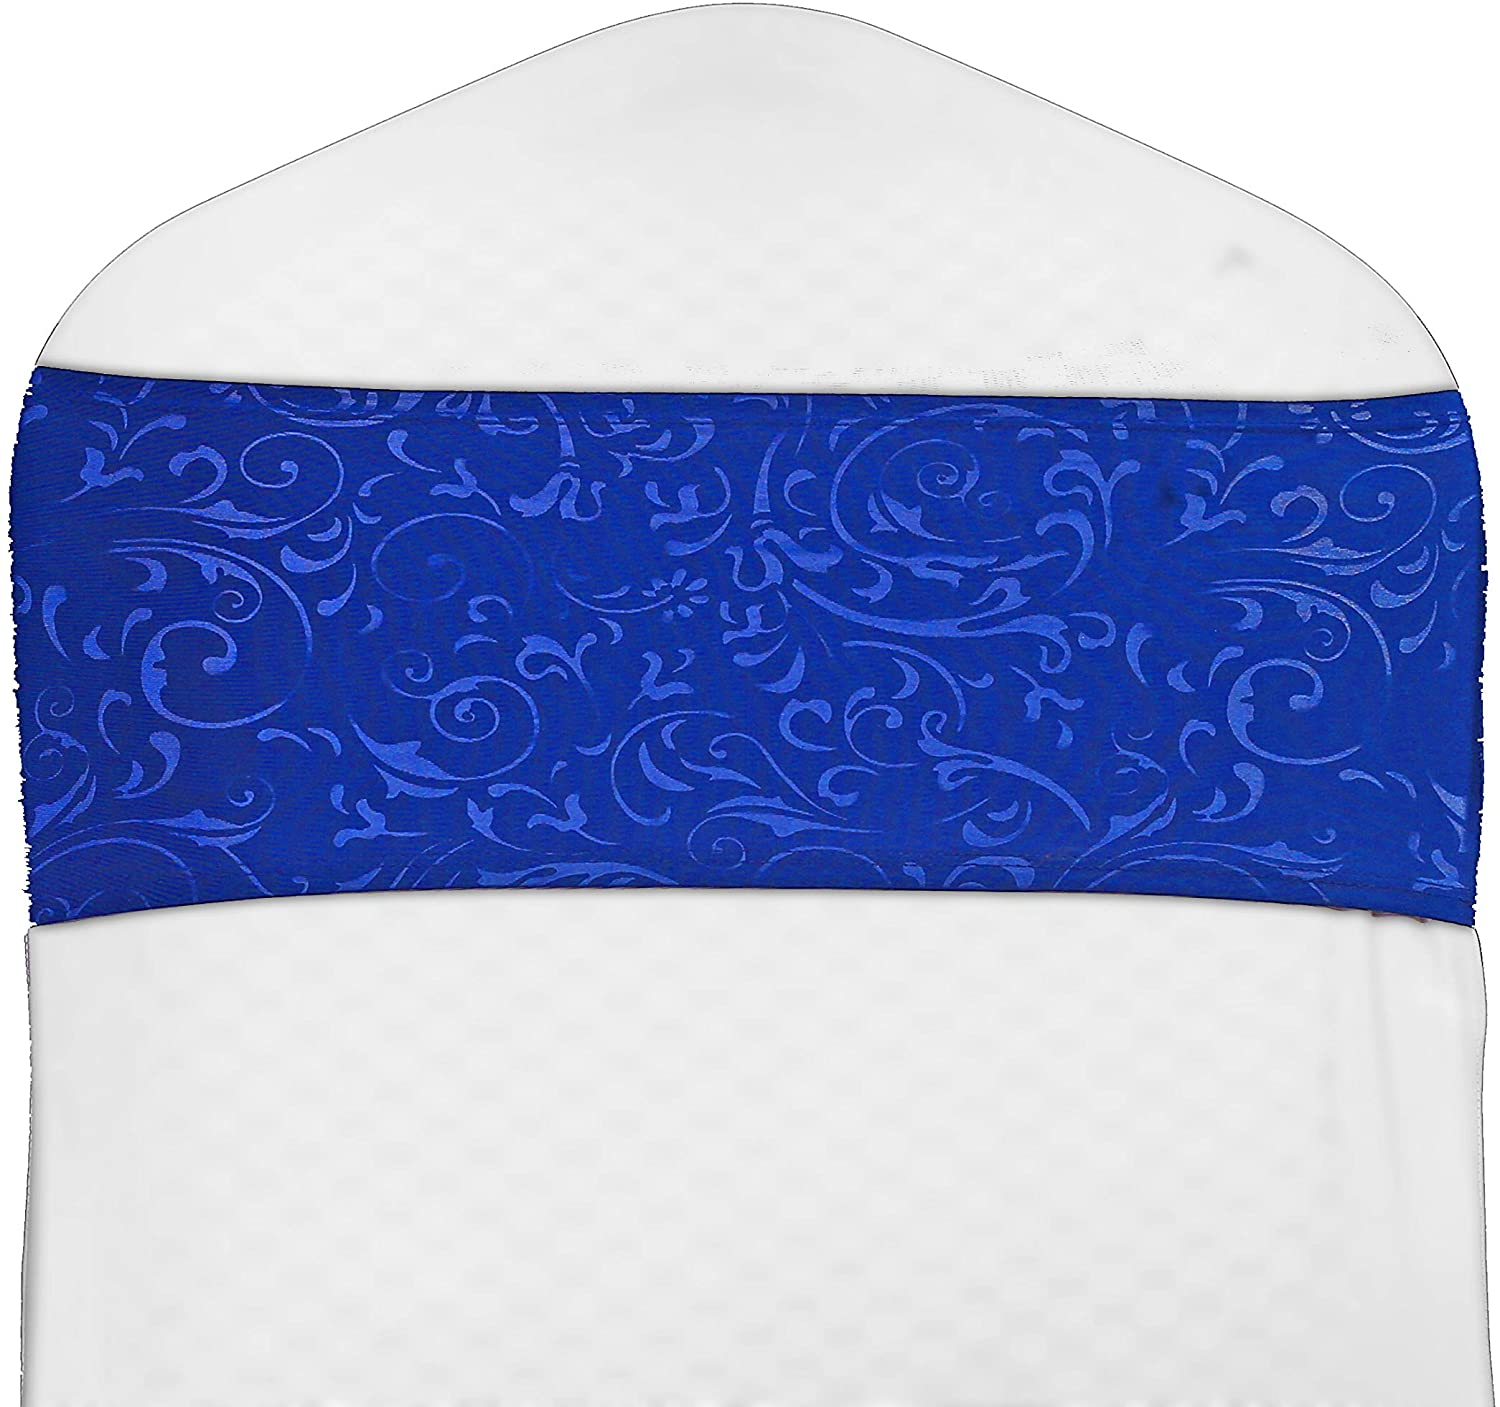 mds Pack of 1 Spandex Printed Chair Sashes Bow sash Elastic Chair Bands Ties with Buckle for Wedding and Events Decoration Lycra Slider Sashes Bow - Royal Blue